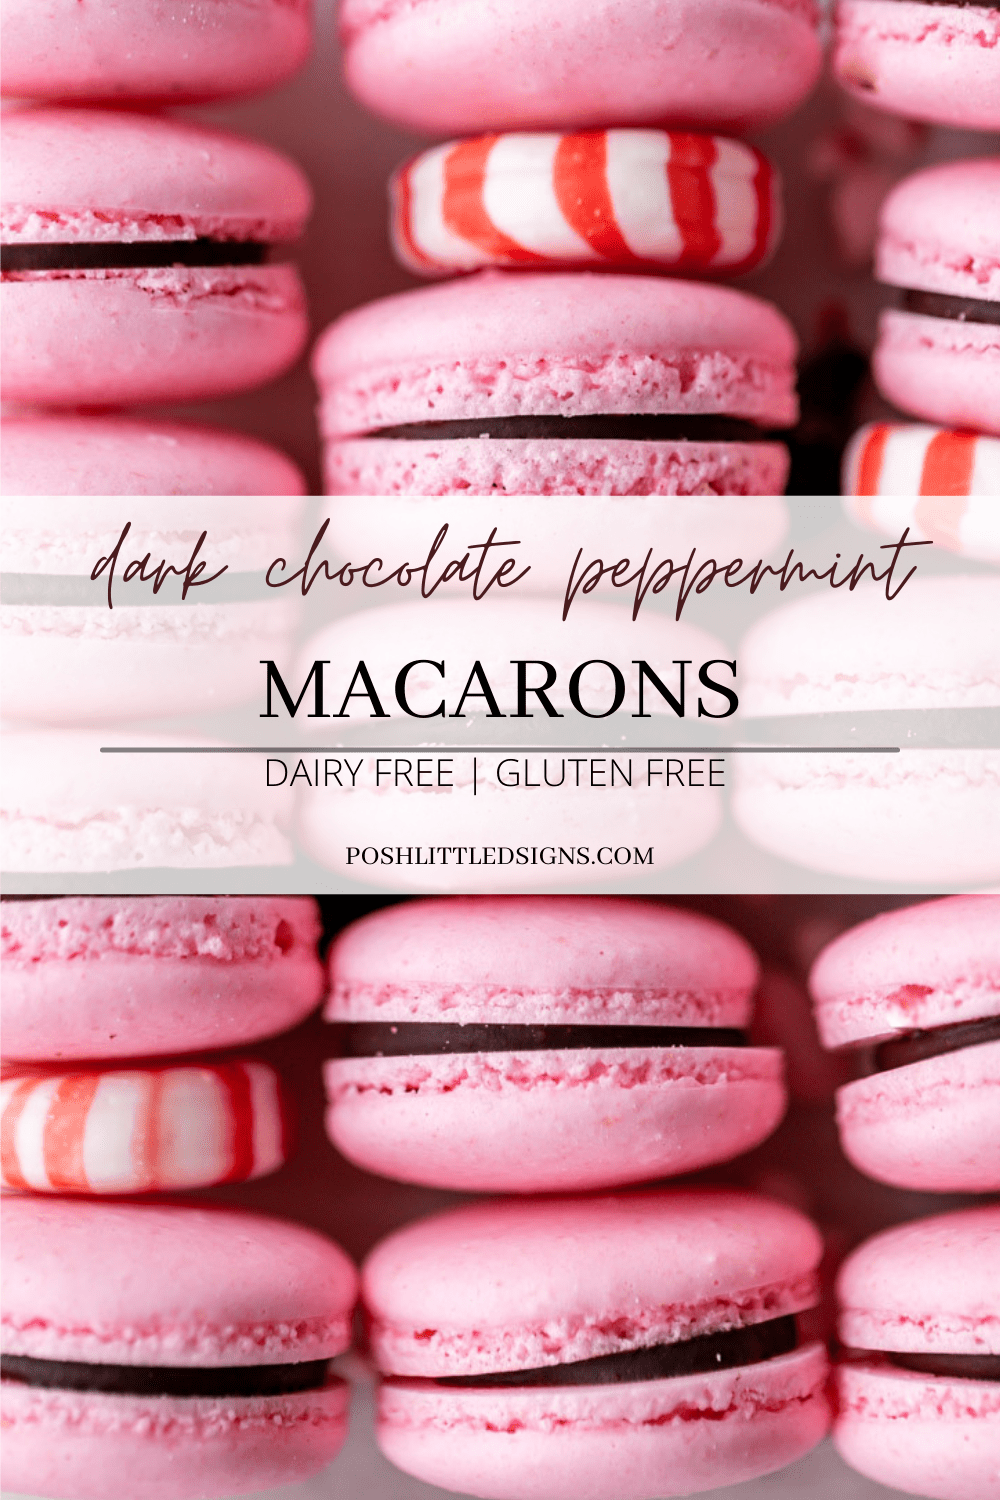 recipe for chocolate peppermint French macarons with chocolate ganache for the holiday season.